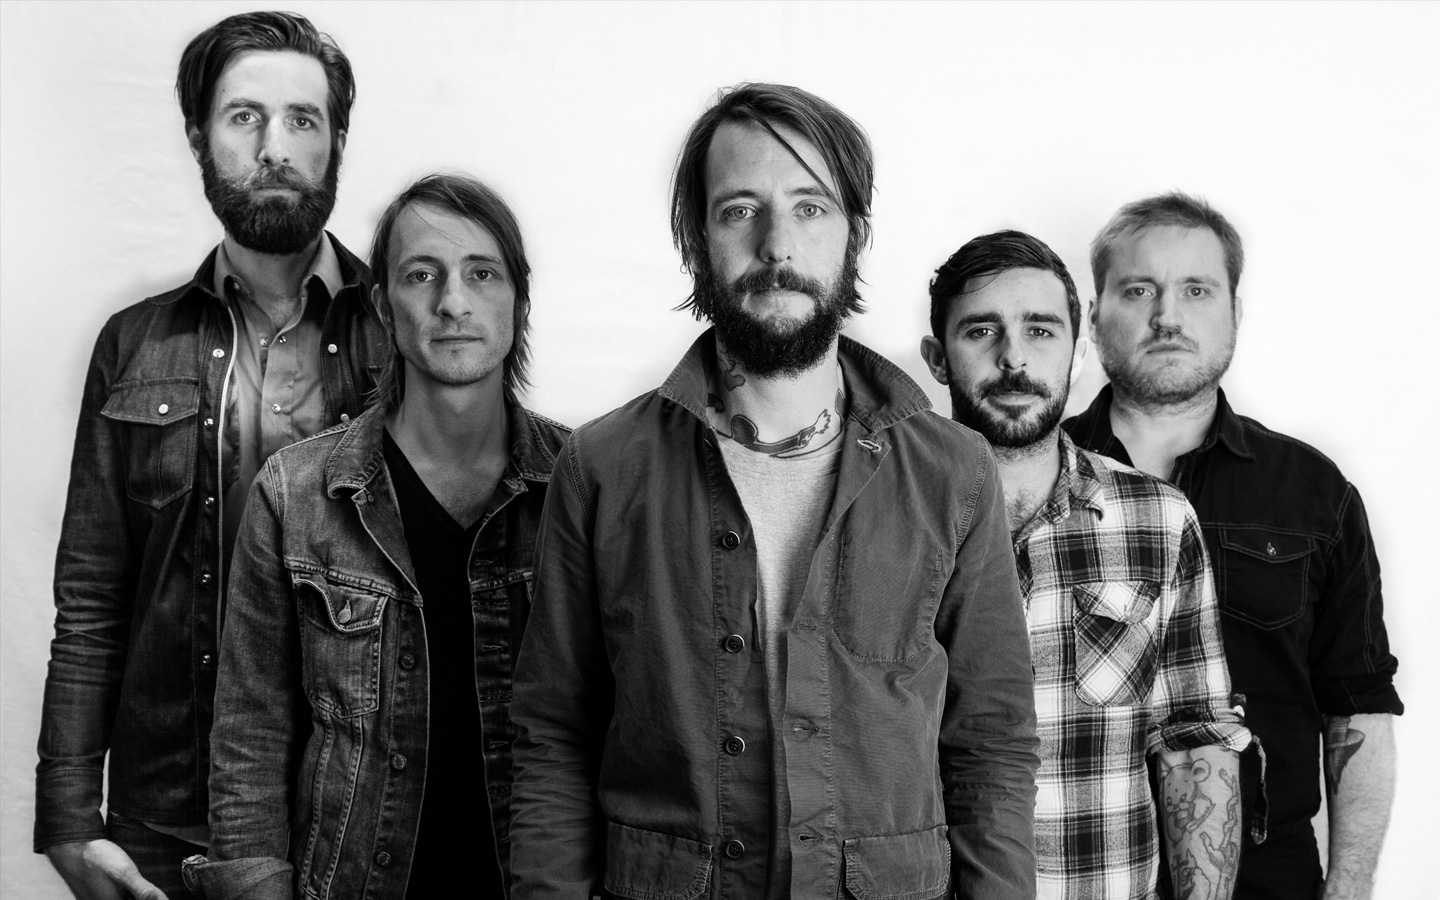 BAND OF HORSES – KÖLN (GLORIA, 20.06.2016)